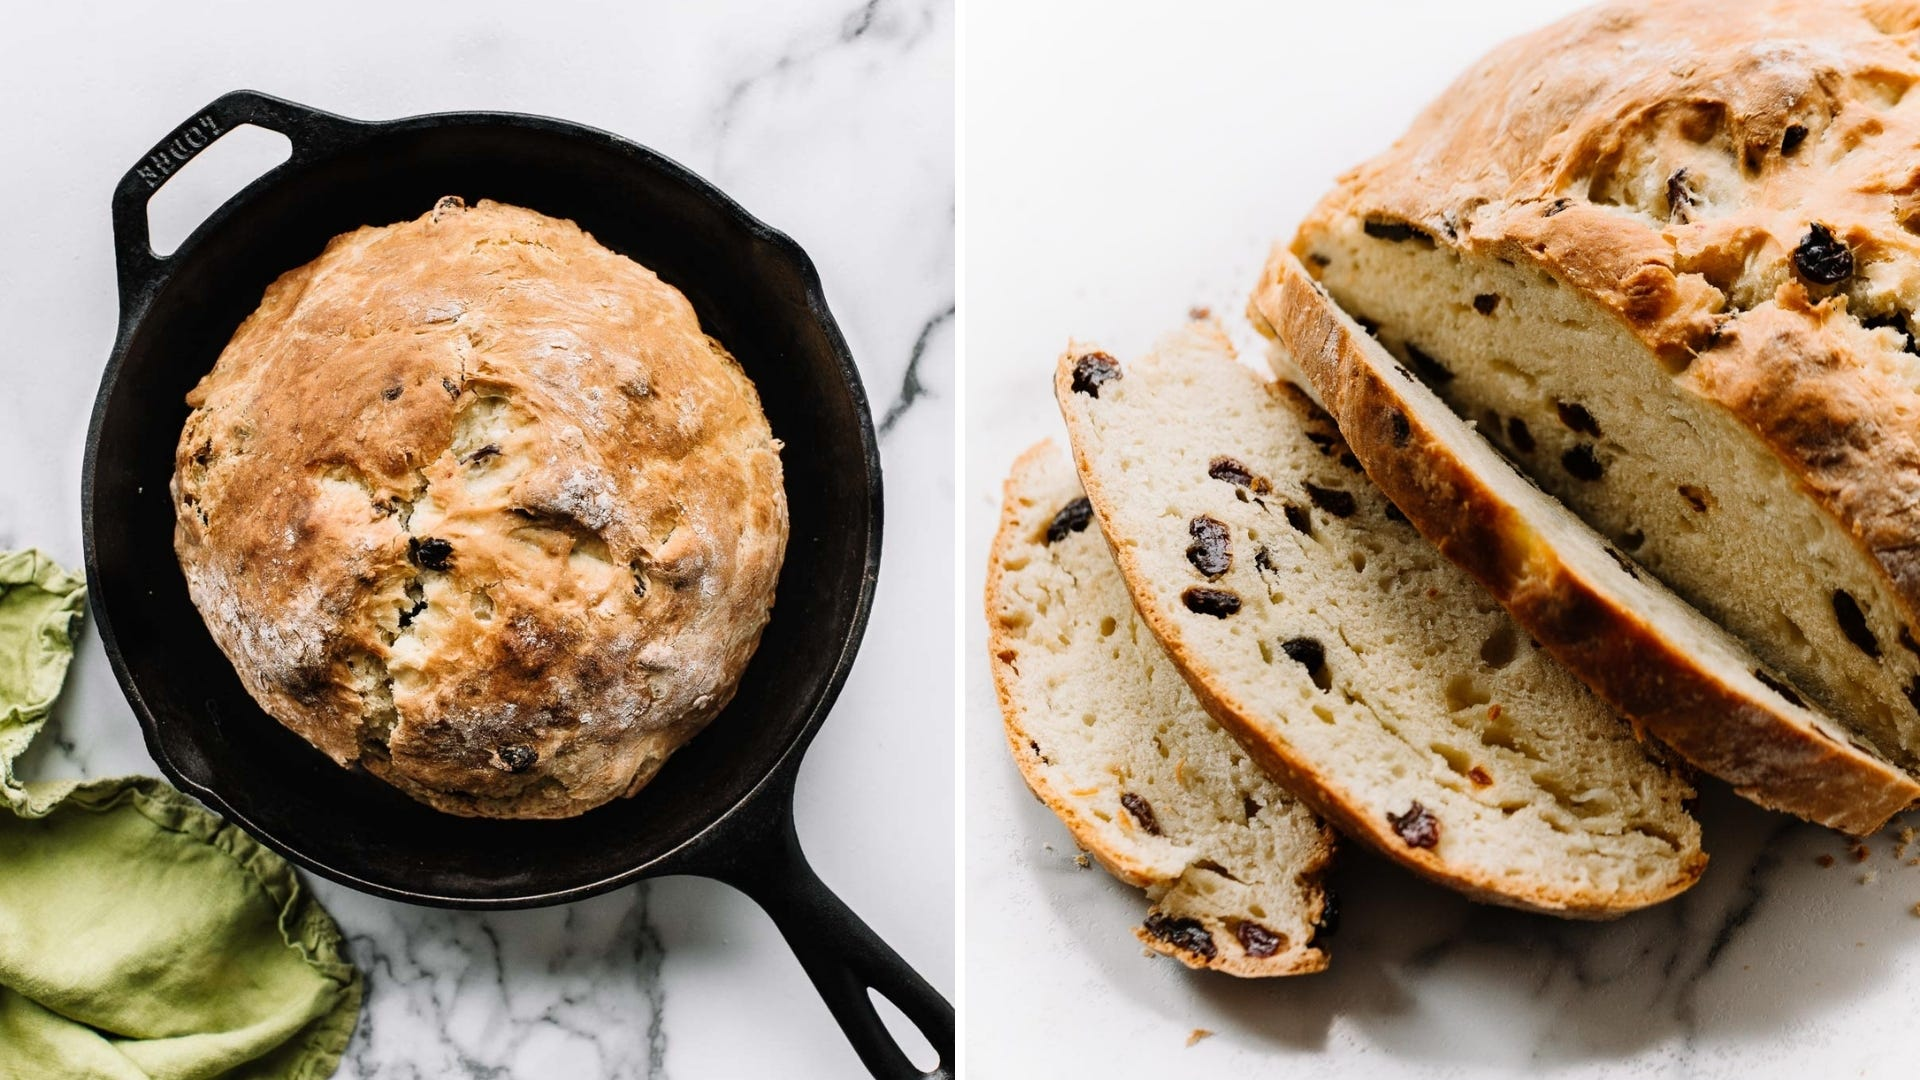 Irish soda bread in cast iron skillet, along with an example of the loaf sliced open.